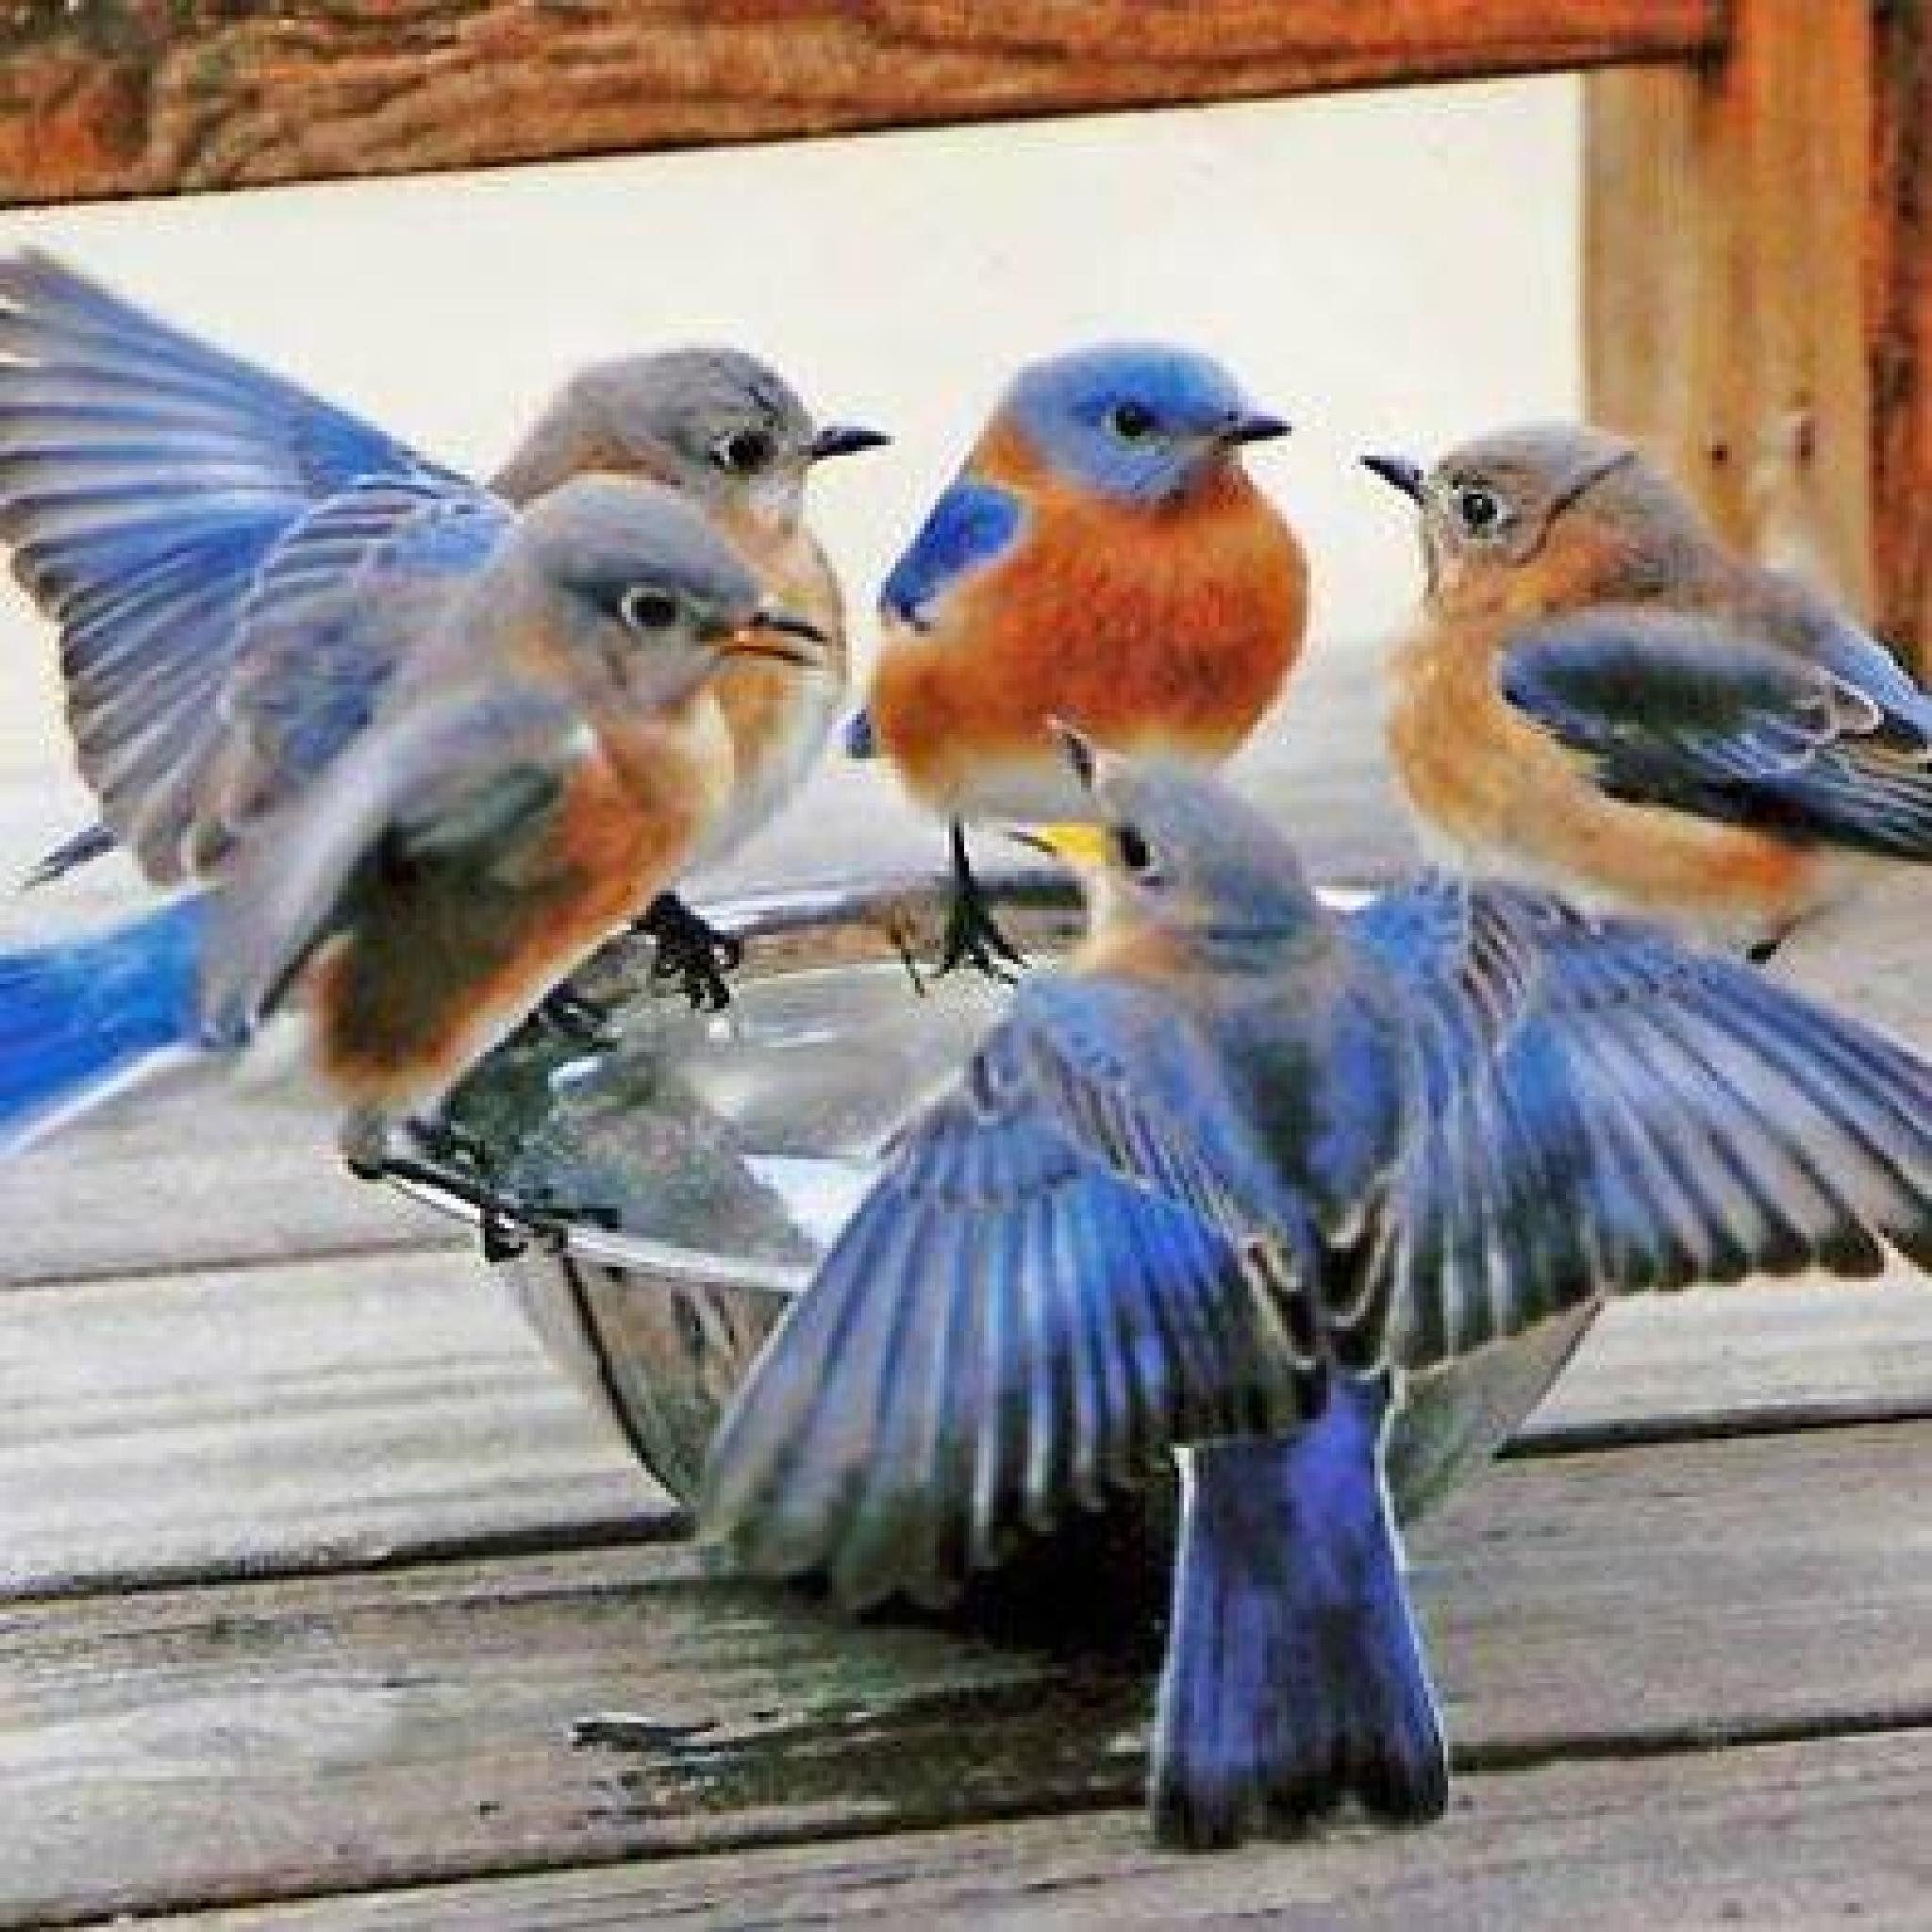 Pretty Birds Stop For a Drink by susan.bailey.1